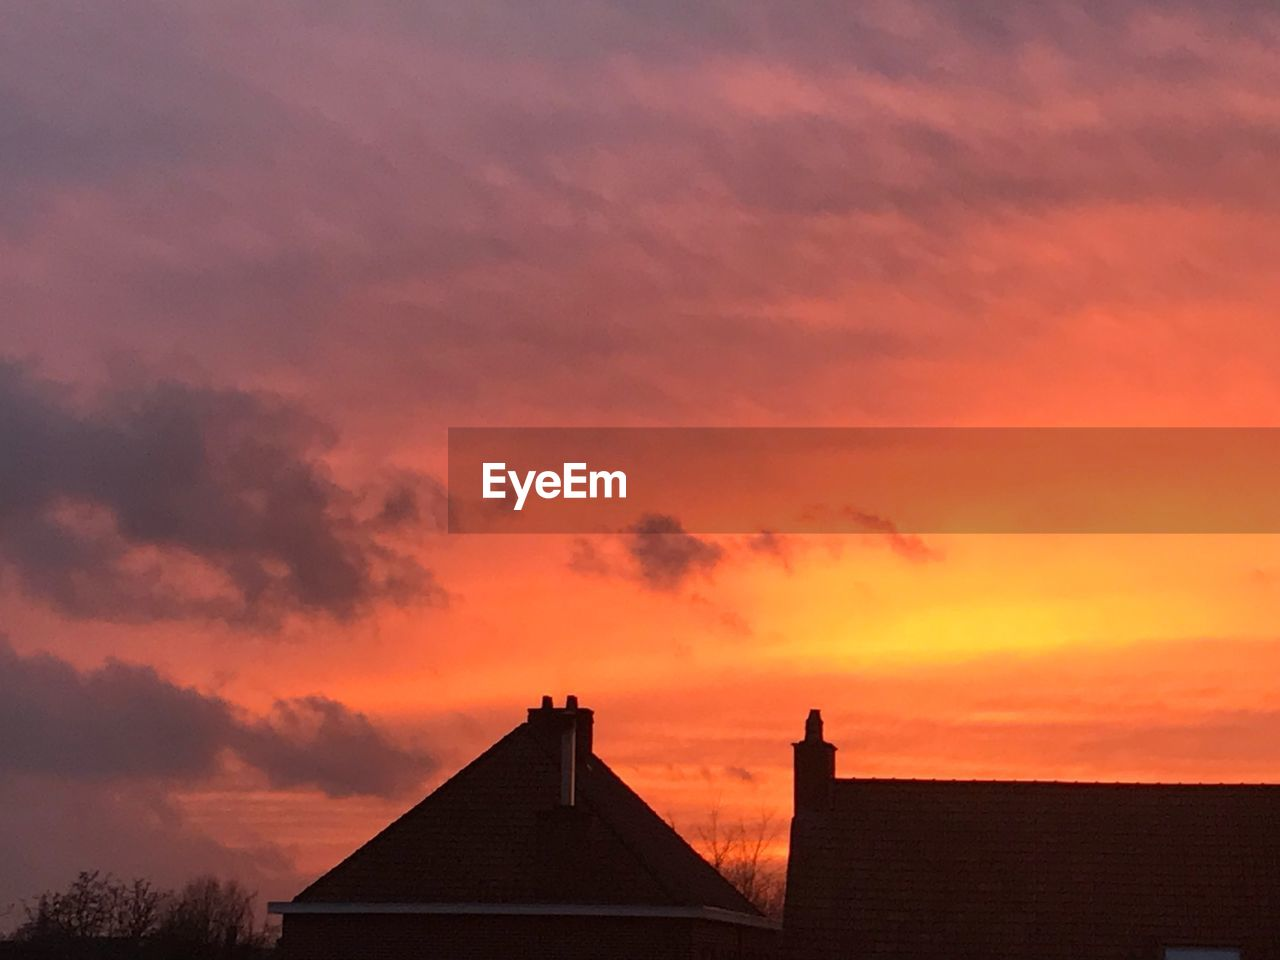 sunset, architecture, sky, built structure, building exterior, cloud - sky, building, orange color, silhouette, nature, roof, beauty in nature, house, scenics - nature, no people, dramatic sky, outdoors, residential district, idyllic, romantic sky